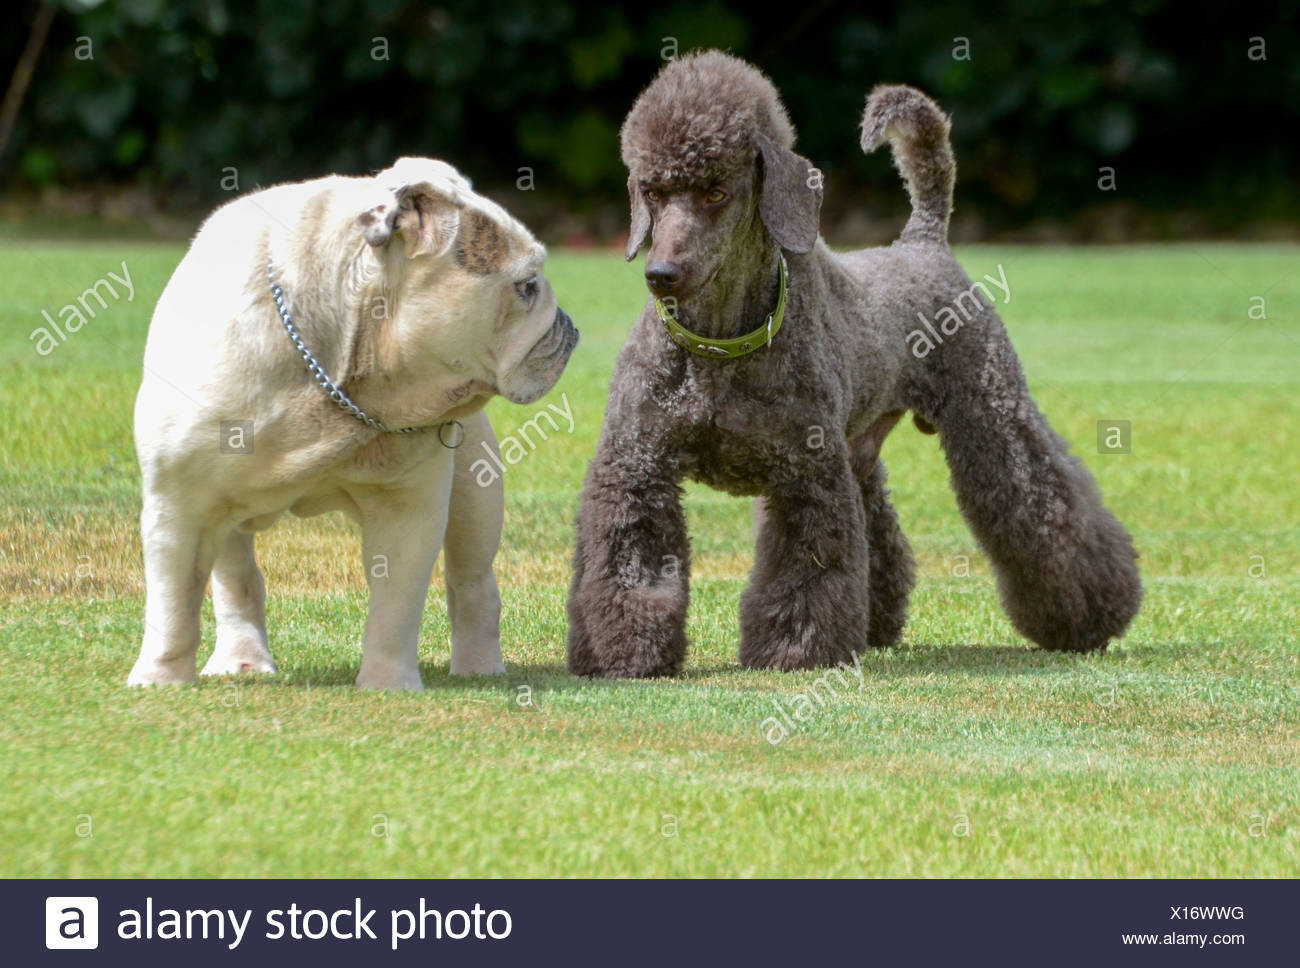 Two pedigree puppies black miniature poodle (left) and